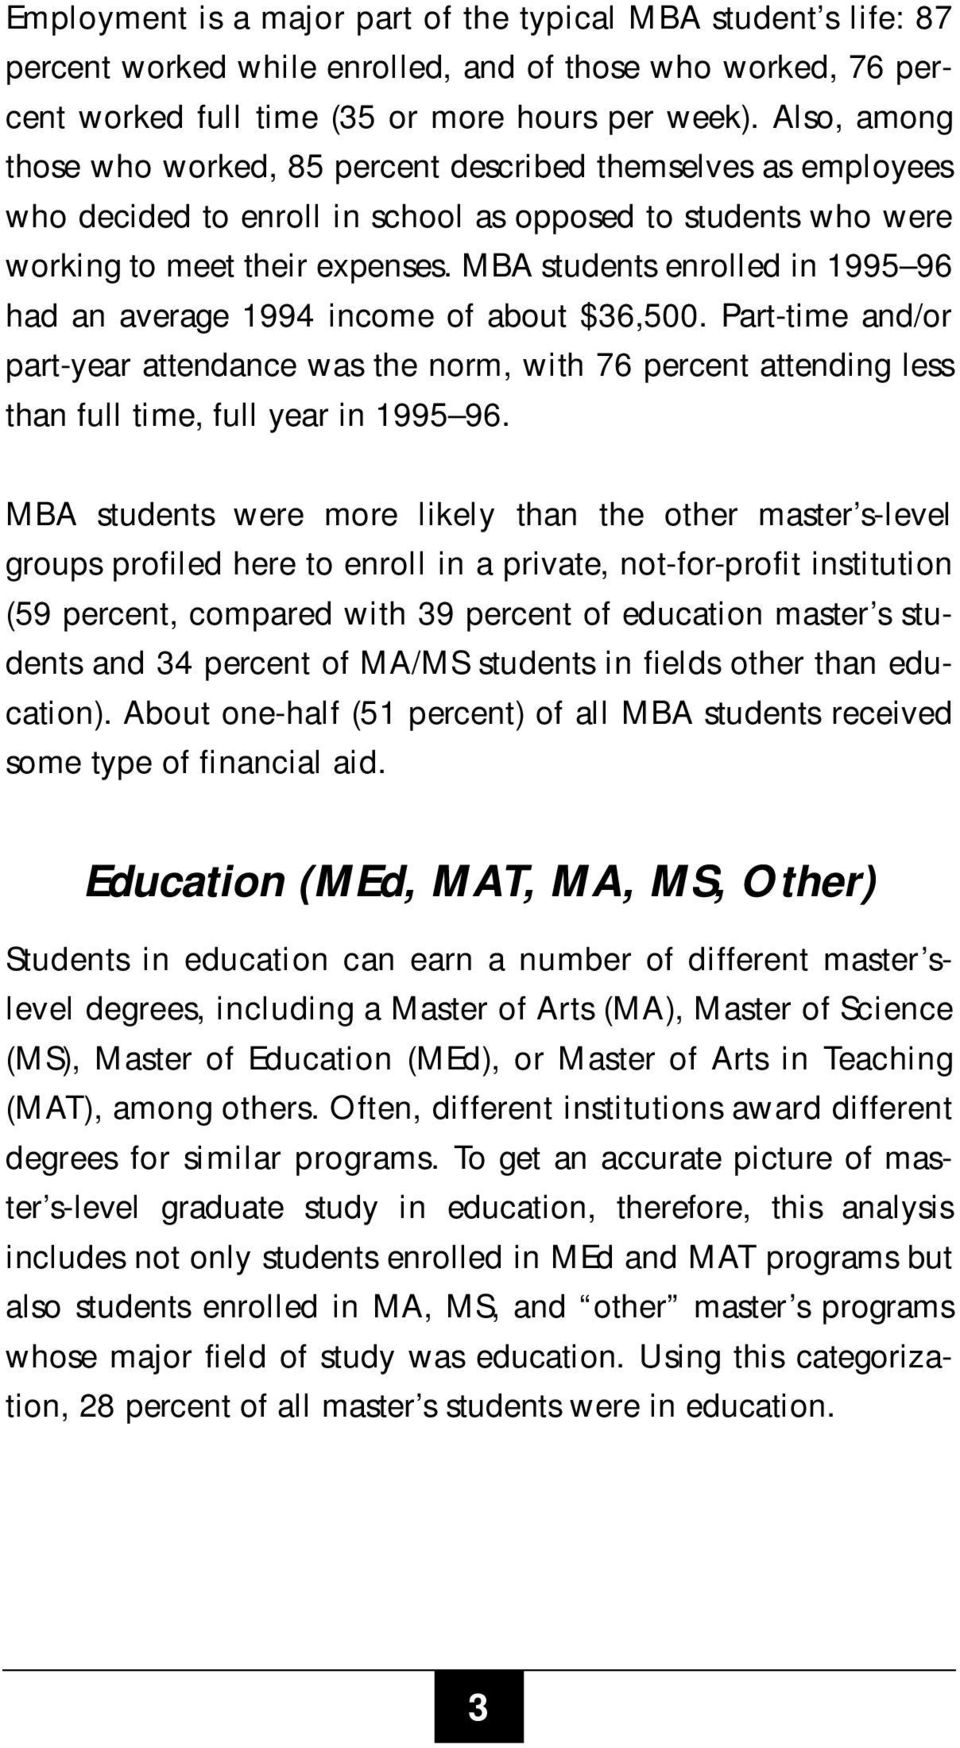 MBA students enrolled in 1995 96 had an average 1994 income of about $36,500. Part-time and/or part-year attendance was the norm, with 76 percent attending less than full time, full year in 1995 96.